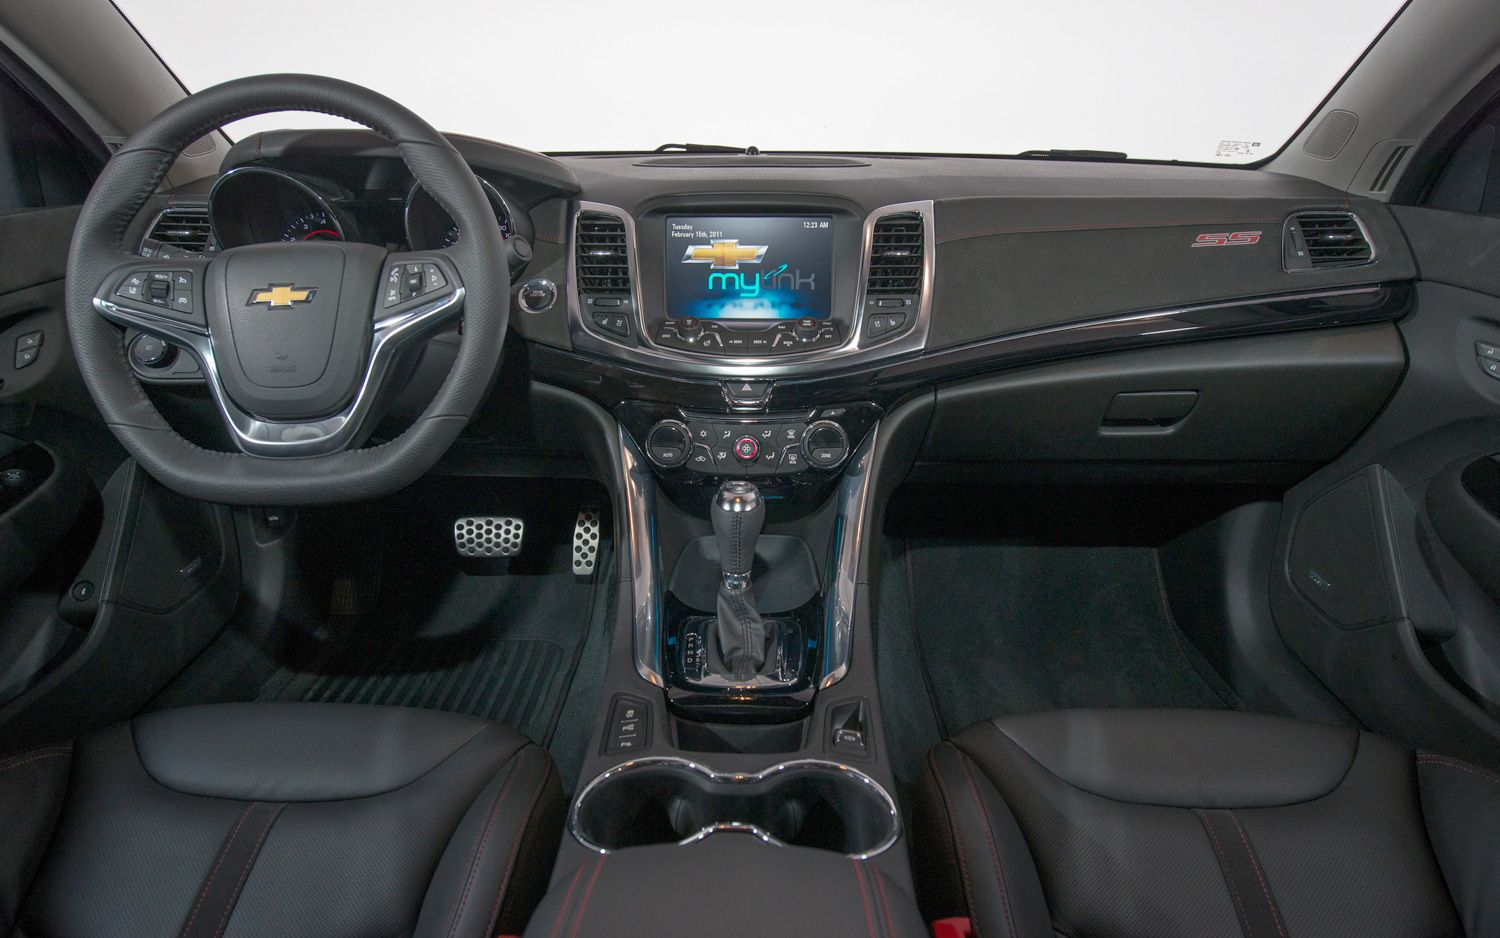 Beautiful Chevrolet SS Interior Wallpaper   Http://wallpaperzoo.com/chevrolet Ss  Interior Wallpaper 38267.html #ChevroletSSInterior